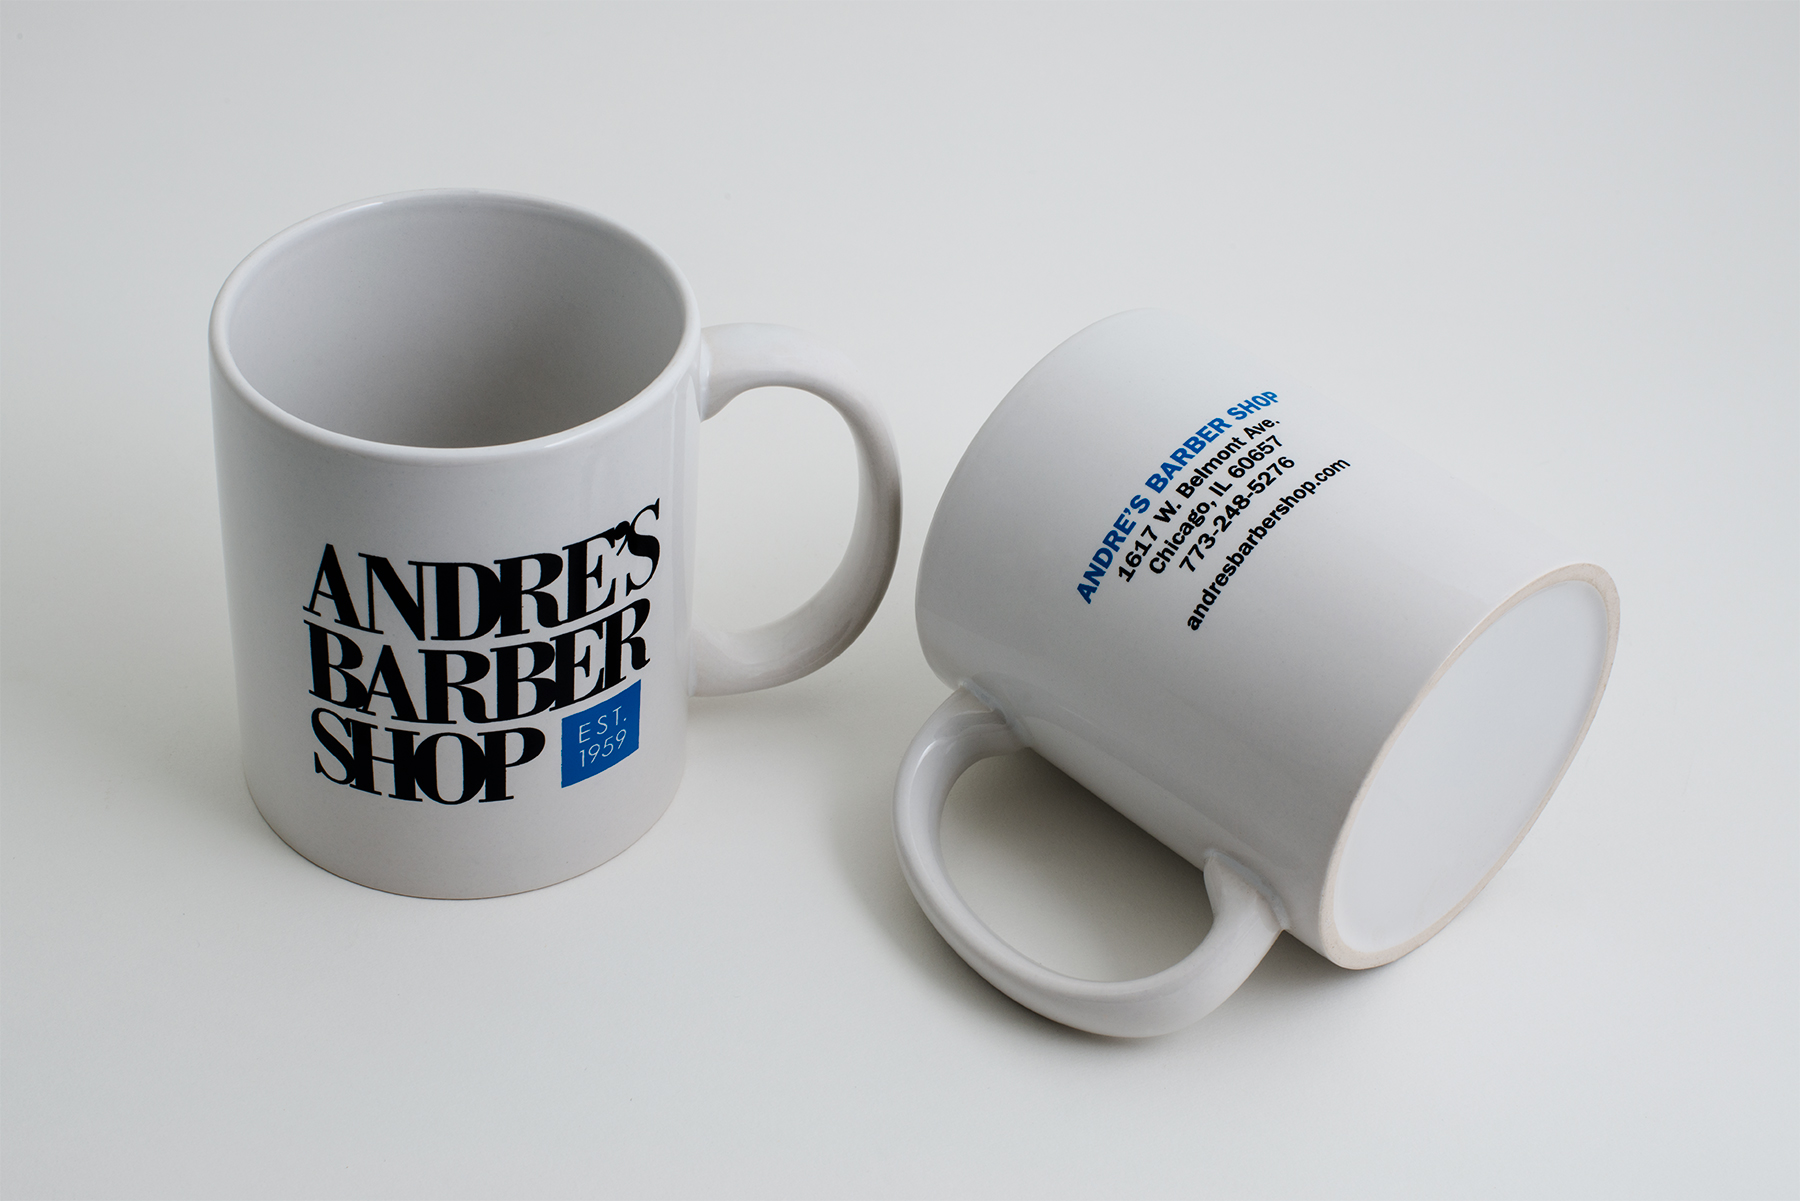 AndresBarberShop_CoffeeMugs.jpg